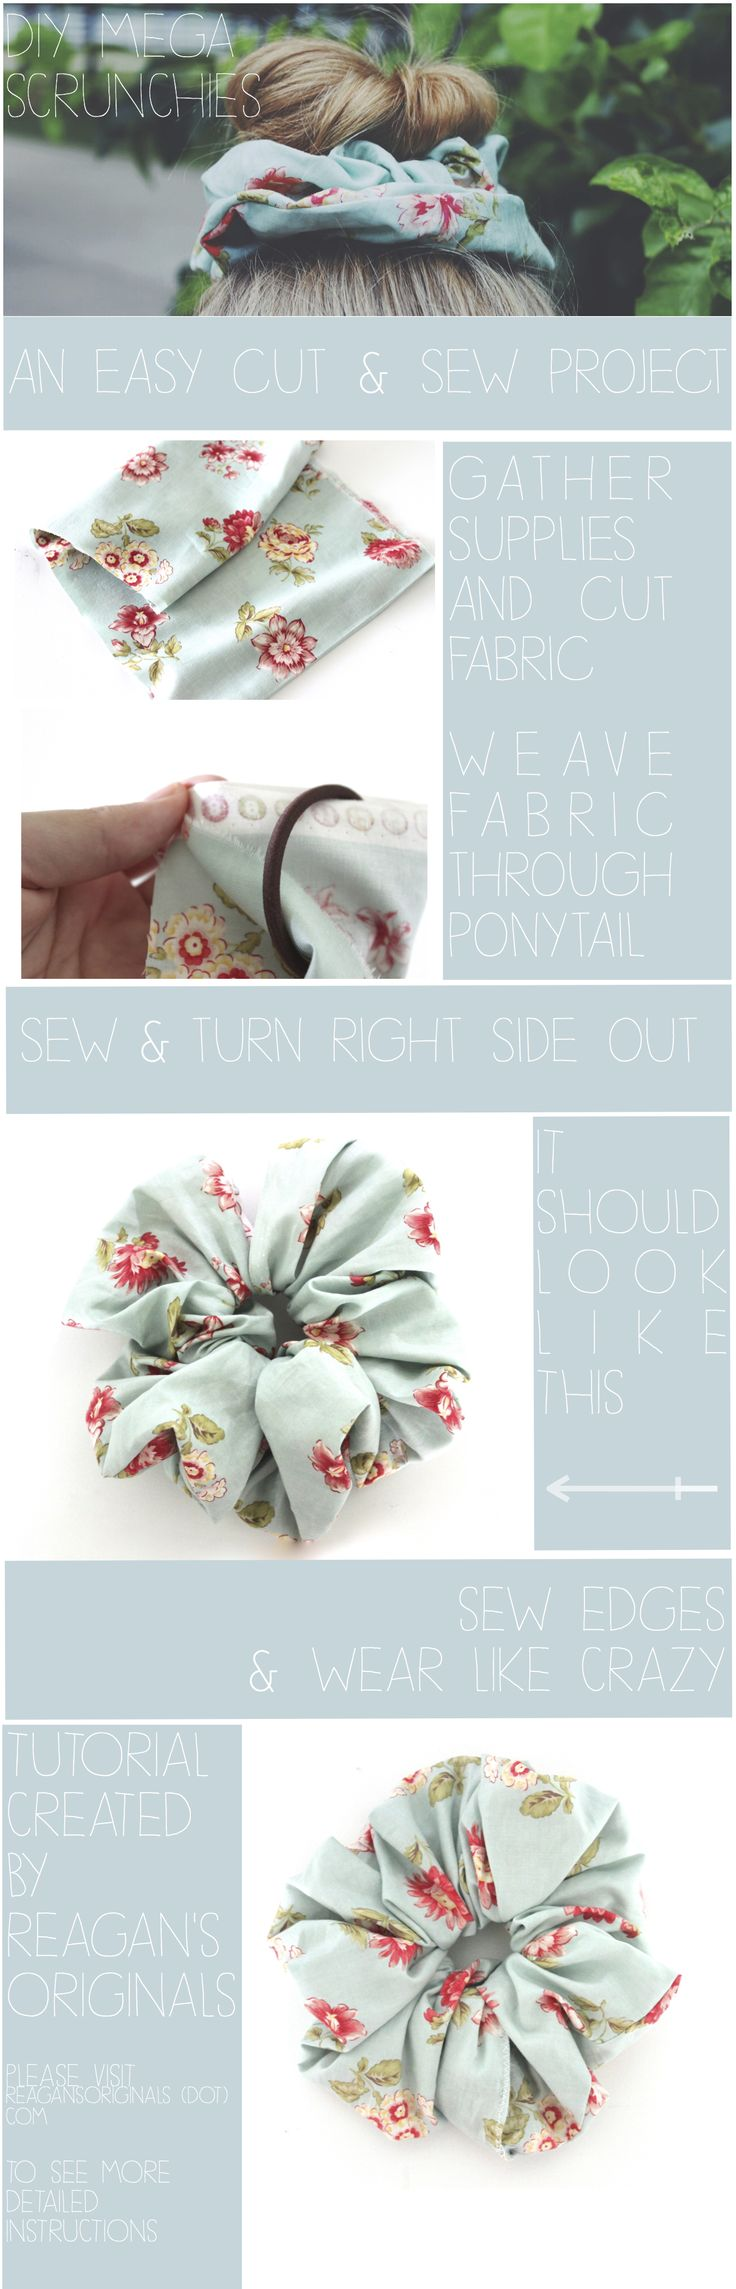 """DIY Scrunchies. """"I have made scrunchies before. But these really aren't the same. you'll just have to trust me."""""""